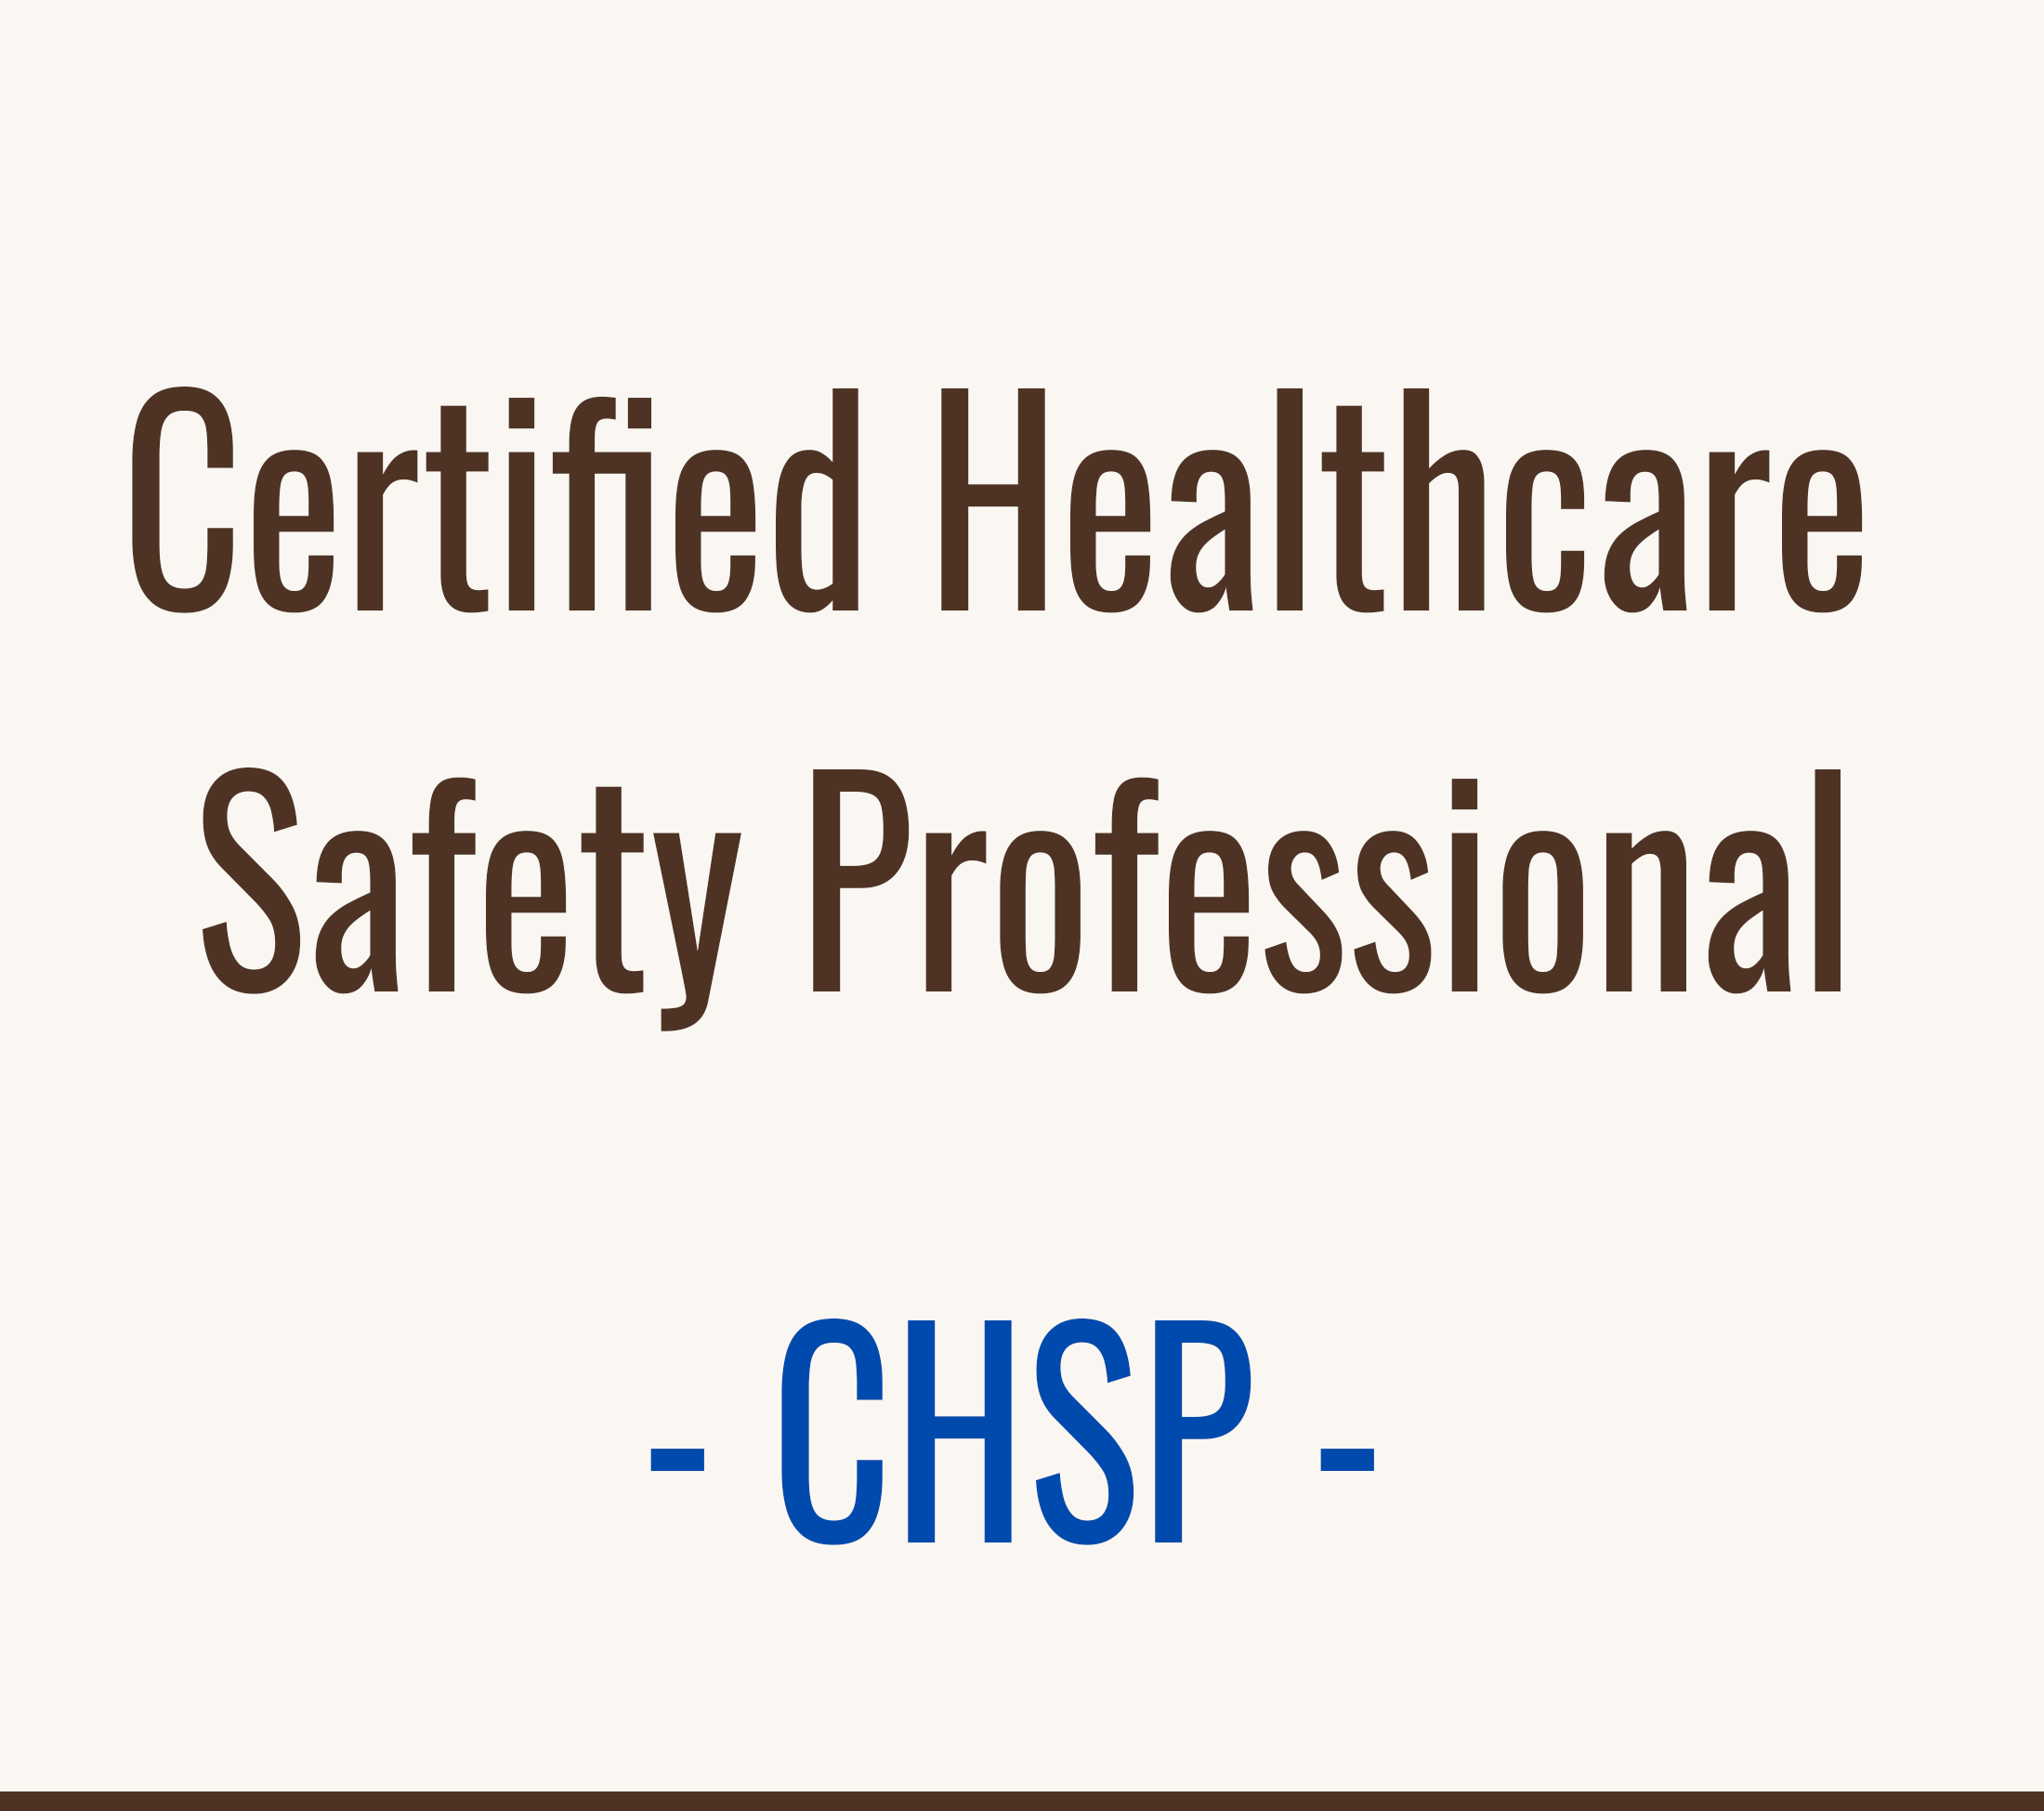 Certified Healthcare Safety Professional